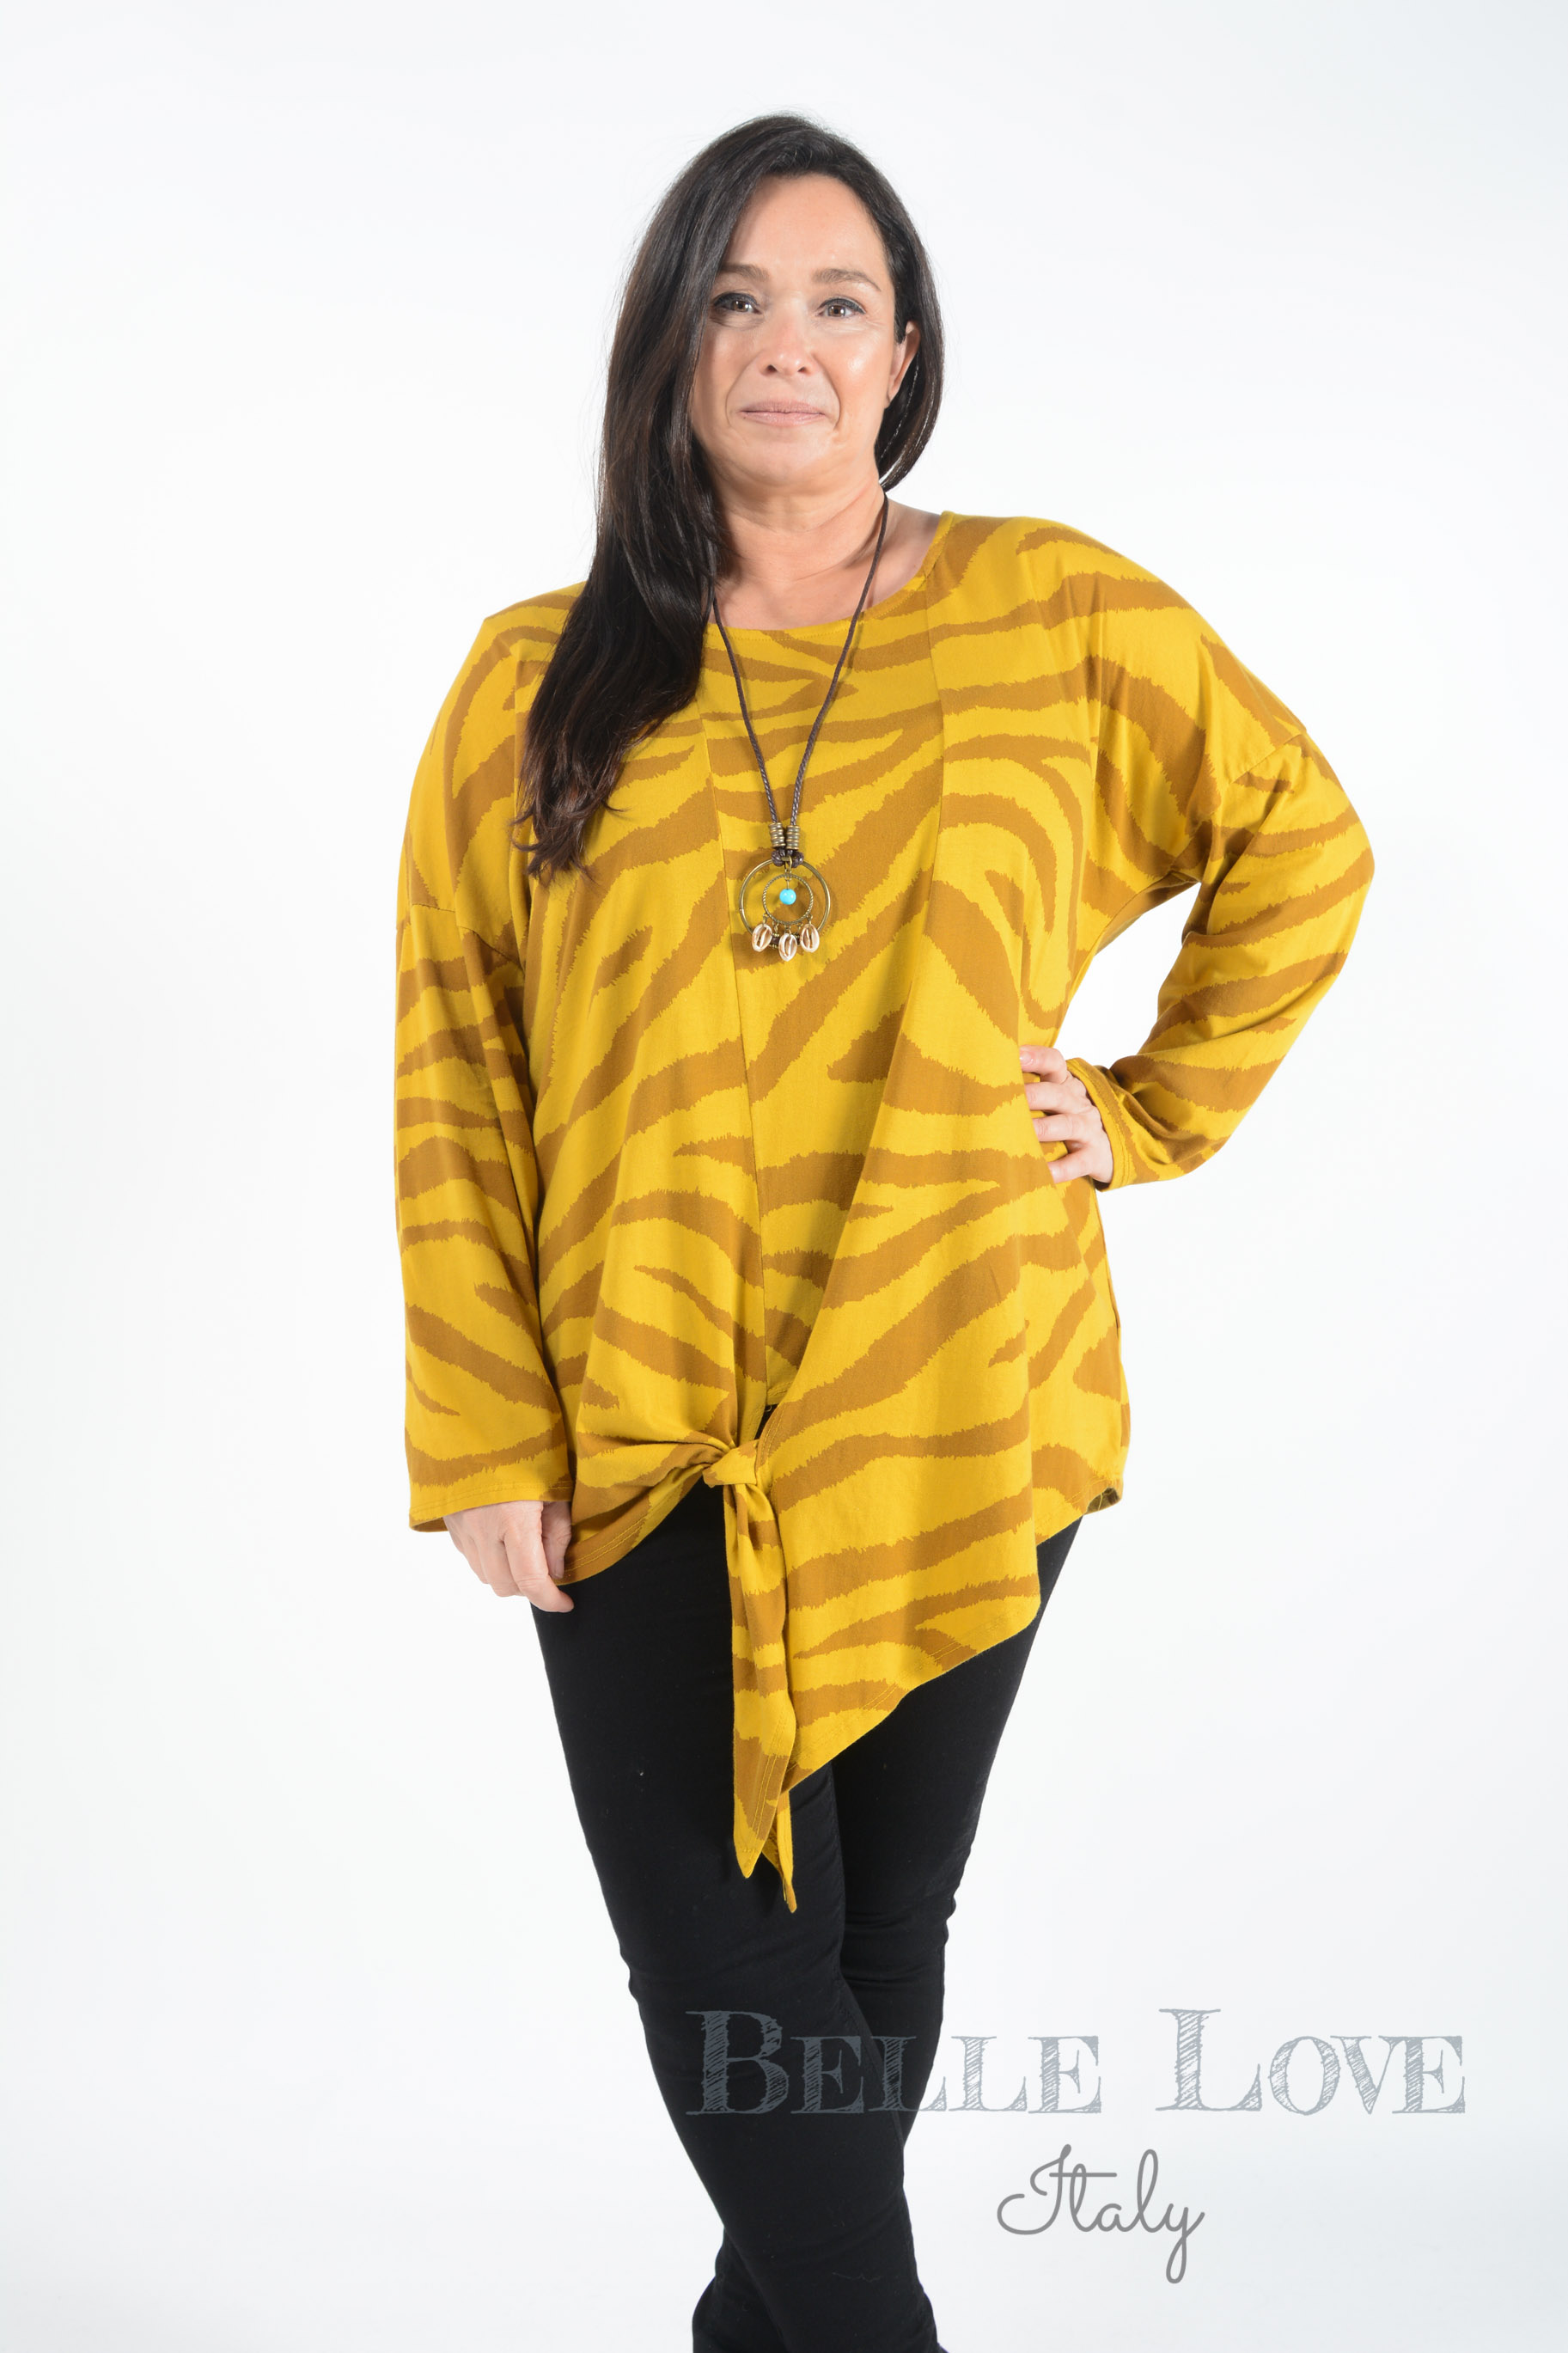 Belle Love Italy Willow Zebra Slipknot Tunic